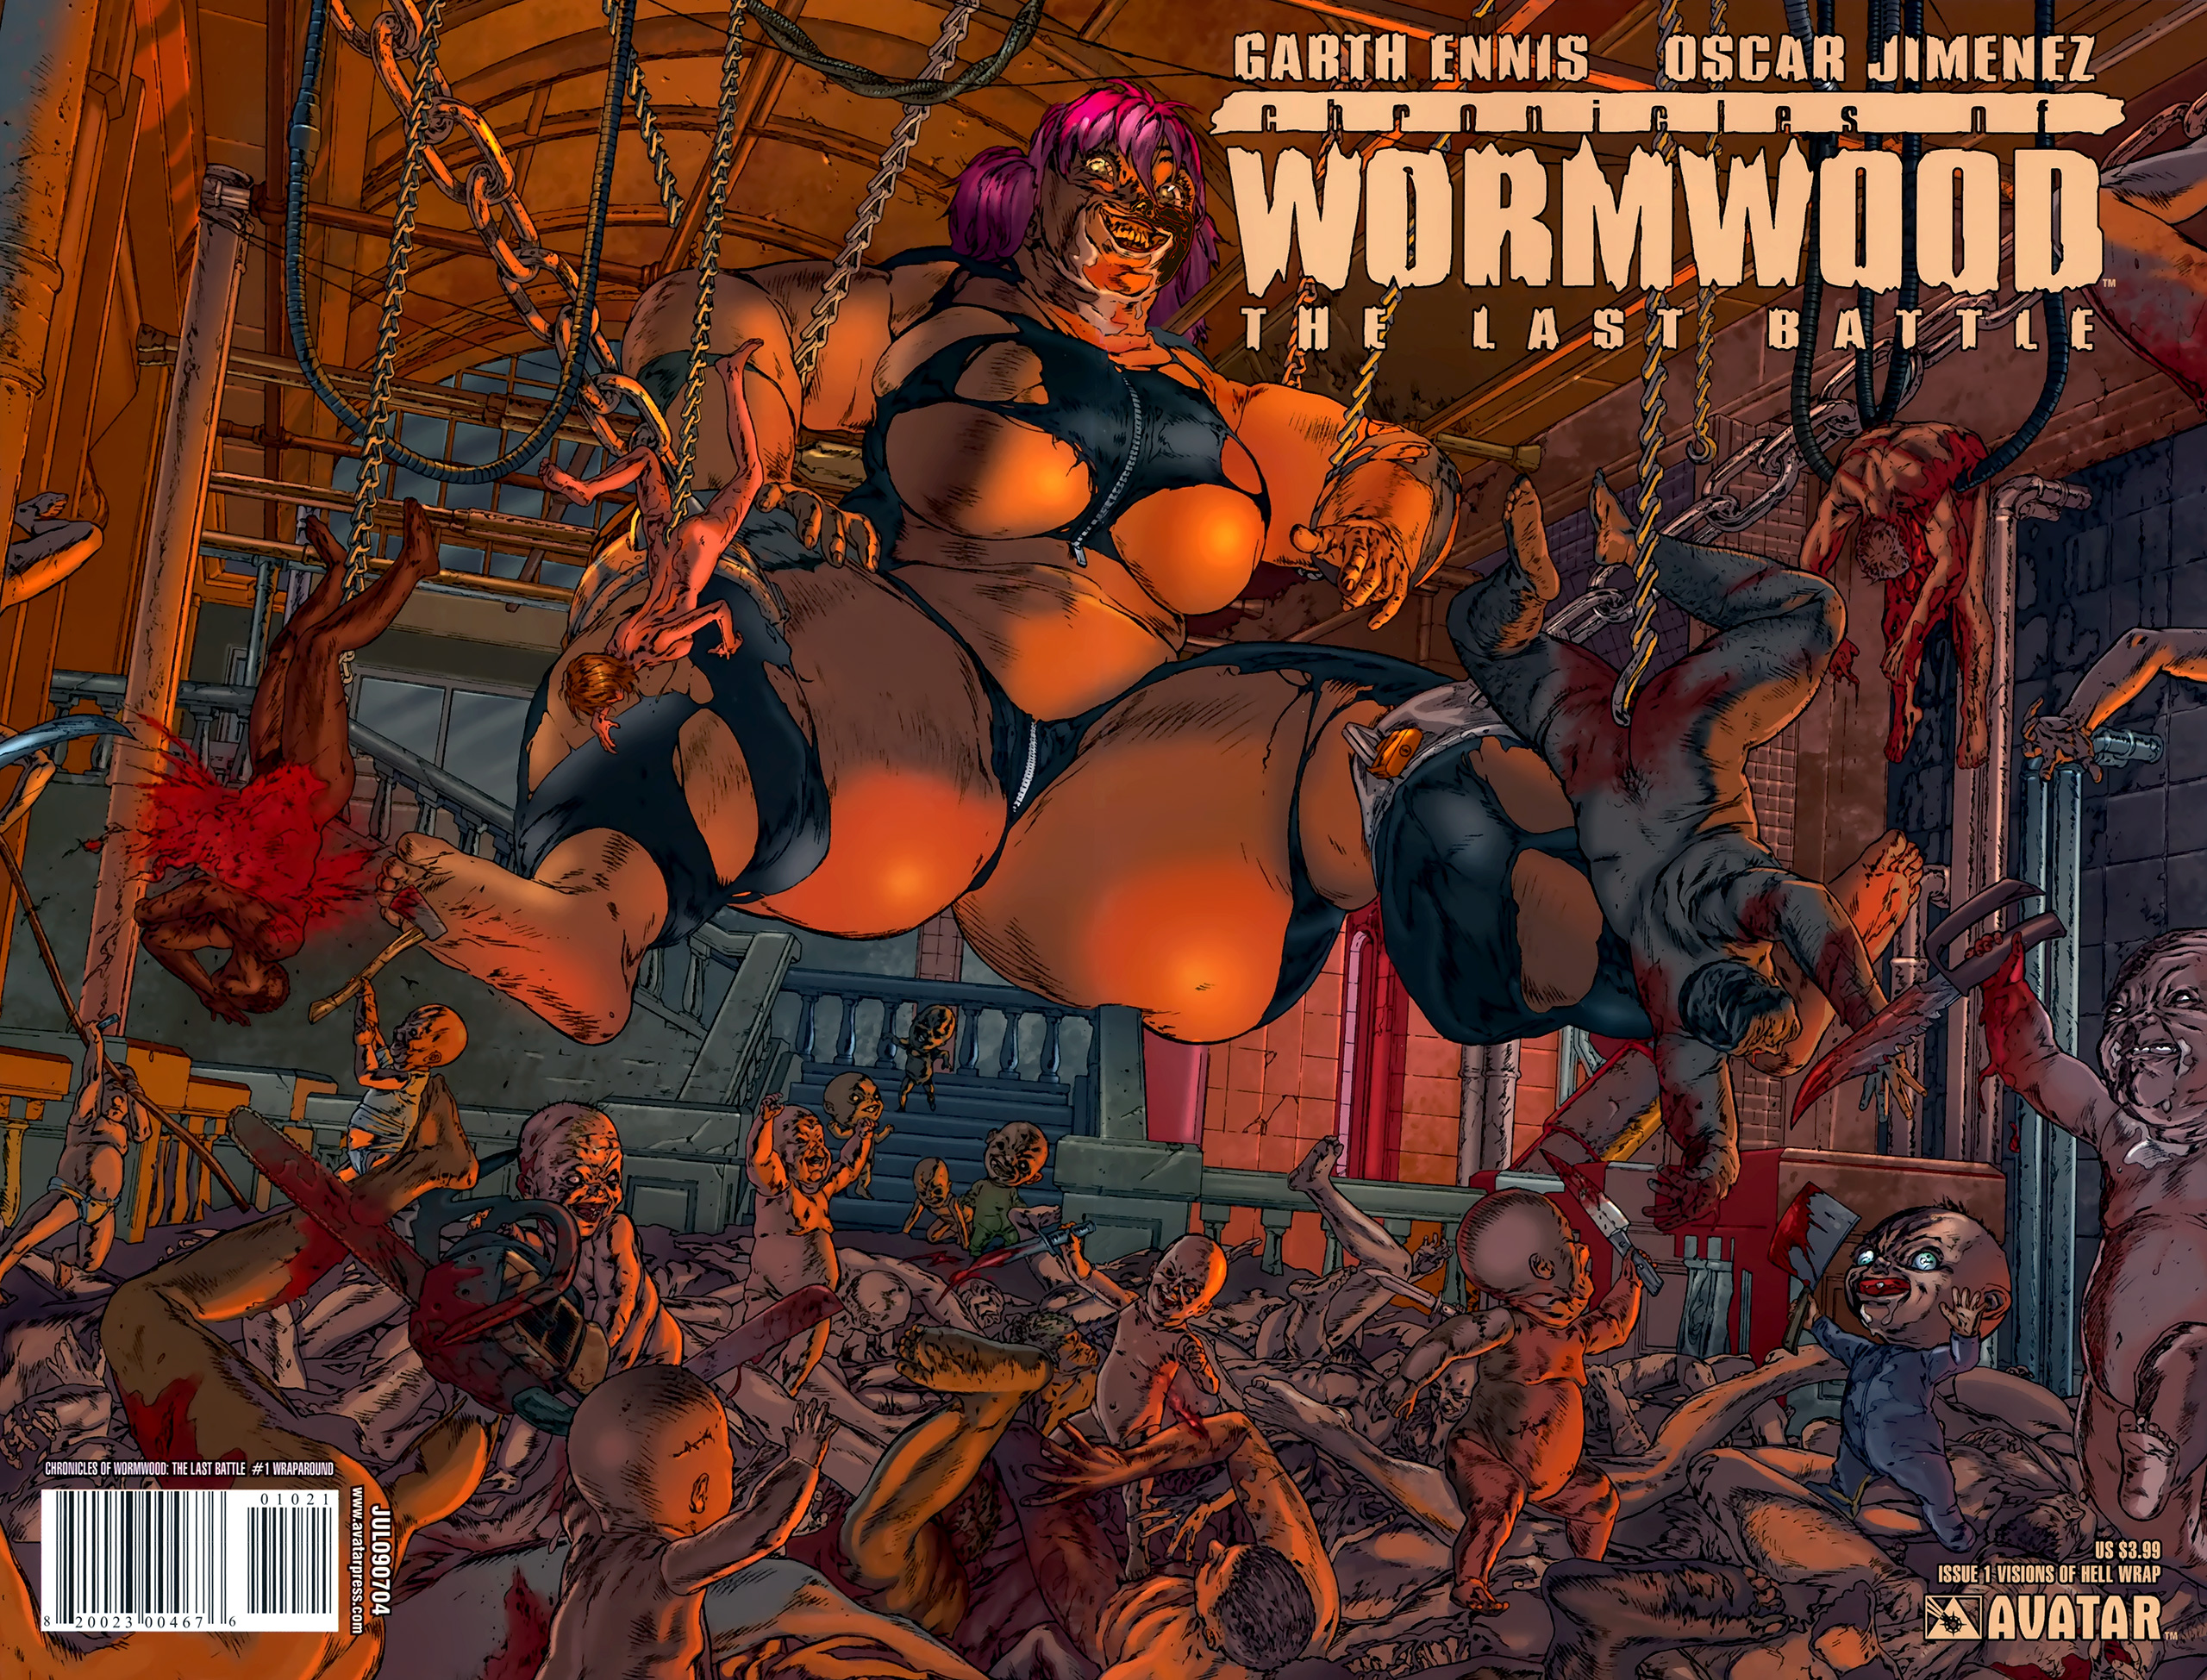 Read online Chronicles of Wormwood: The Last Battle comic -  Issue #1 - 2